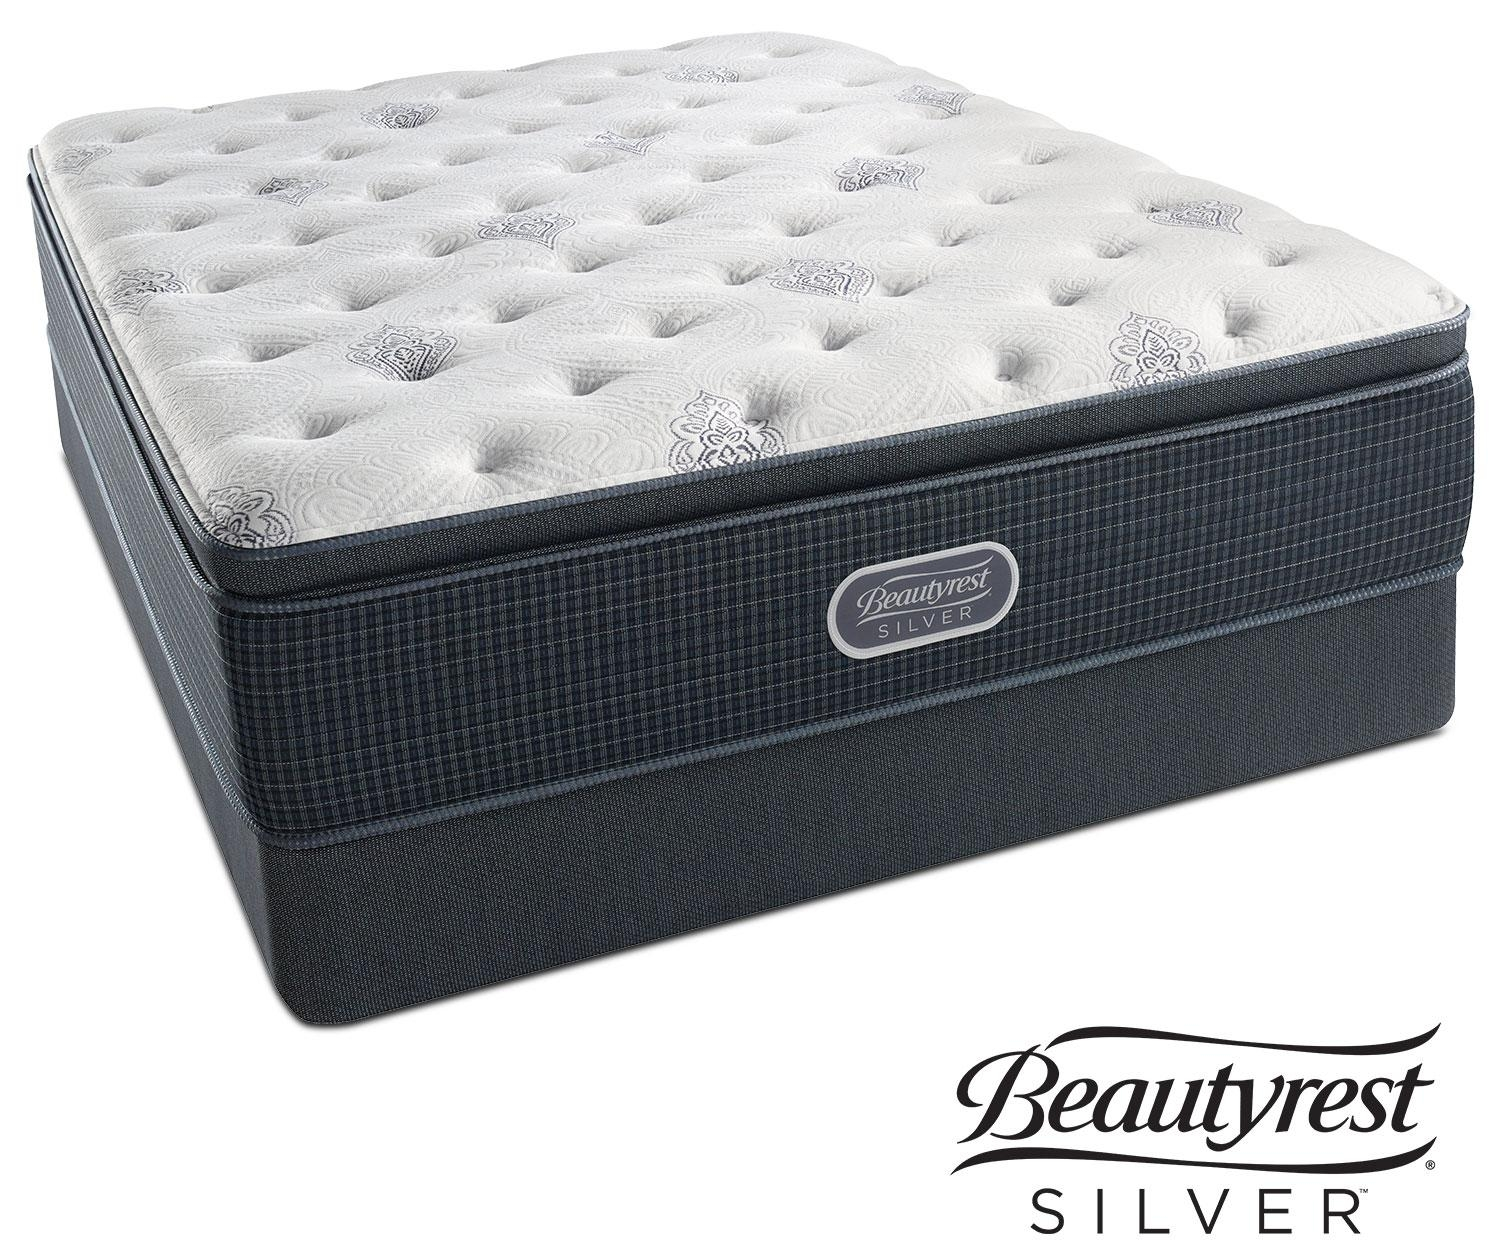 Queen Mattress Sets | Value City Furniture With Queen Mattress Sets (View 4 of 20)